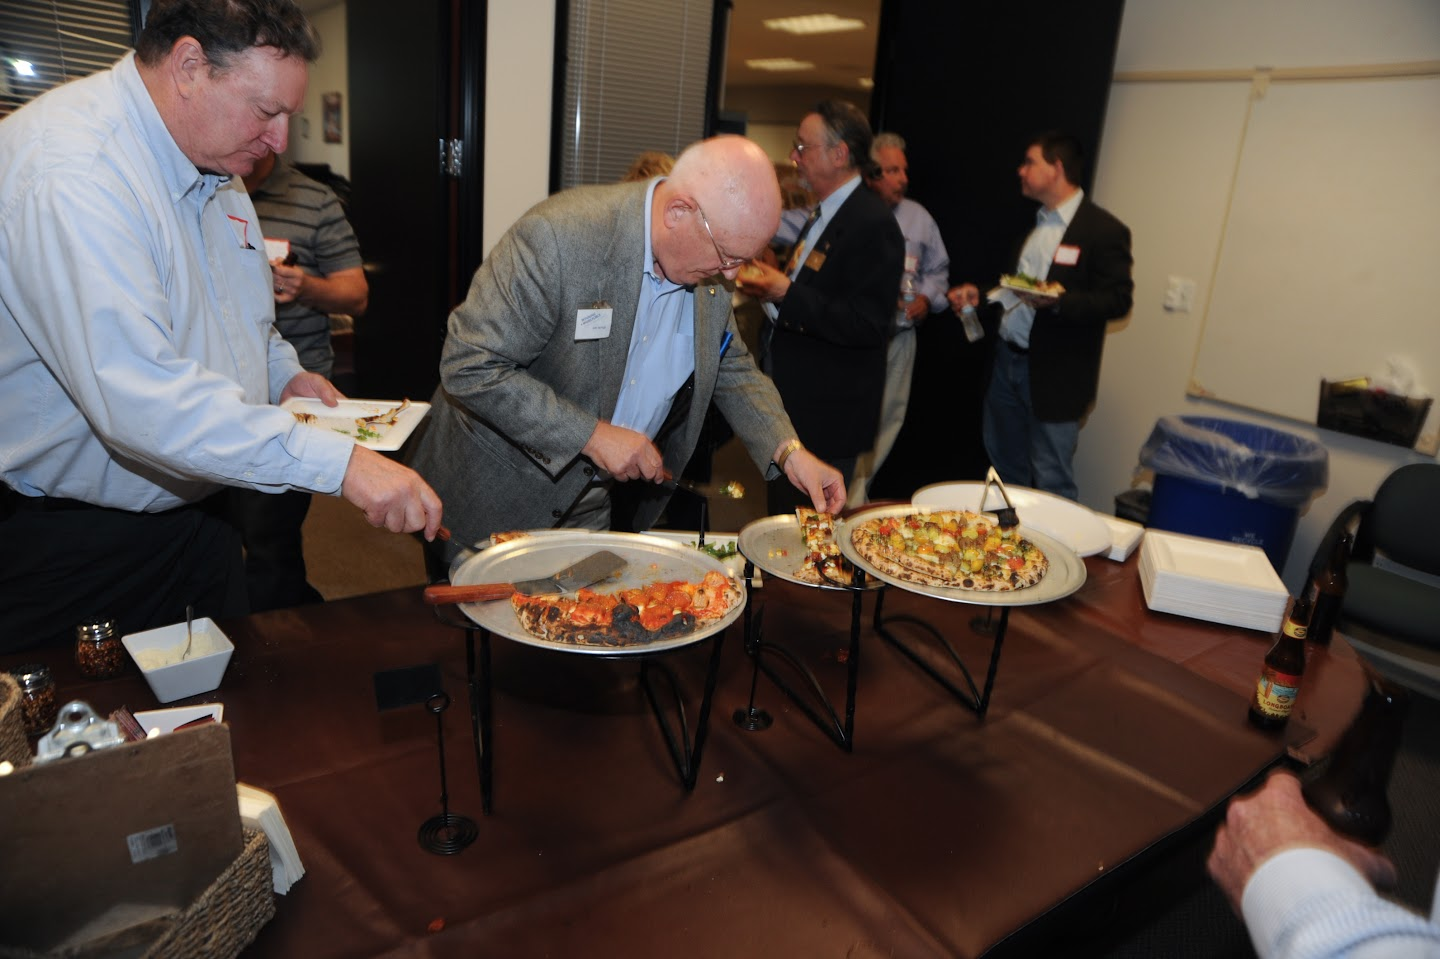 Rotary Means Business at Discovery Office with Rosso Pizzeria - DSC_6801.jpg